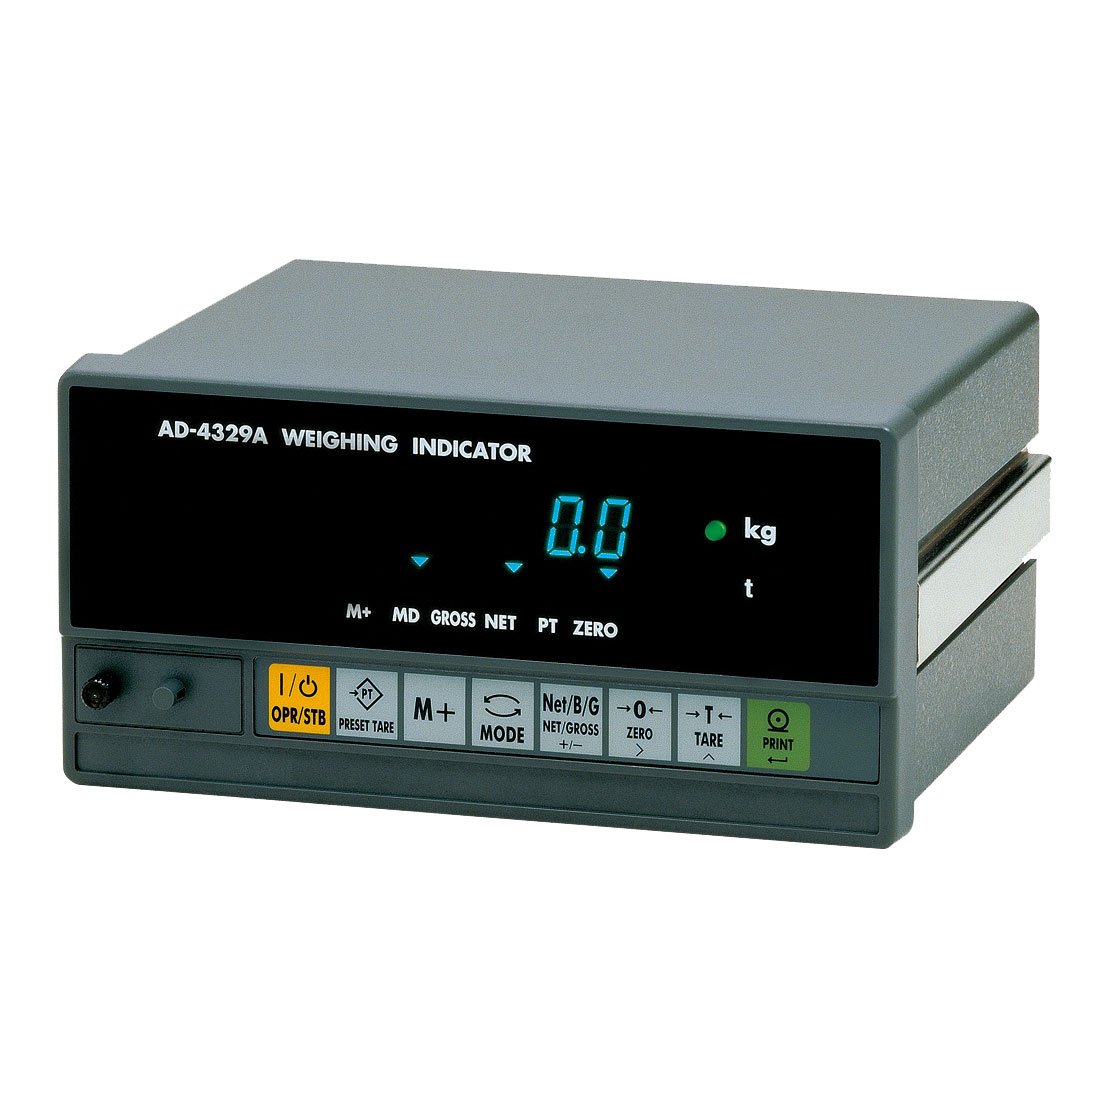 AD-4329 Static Weighing Indicator